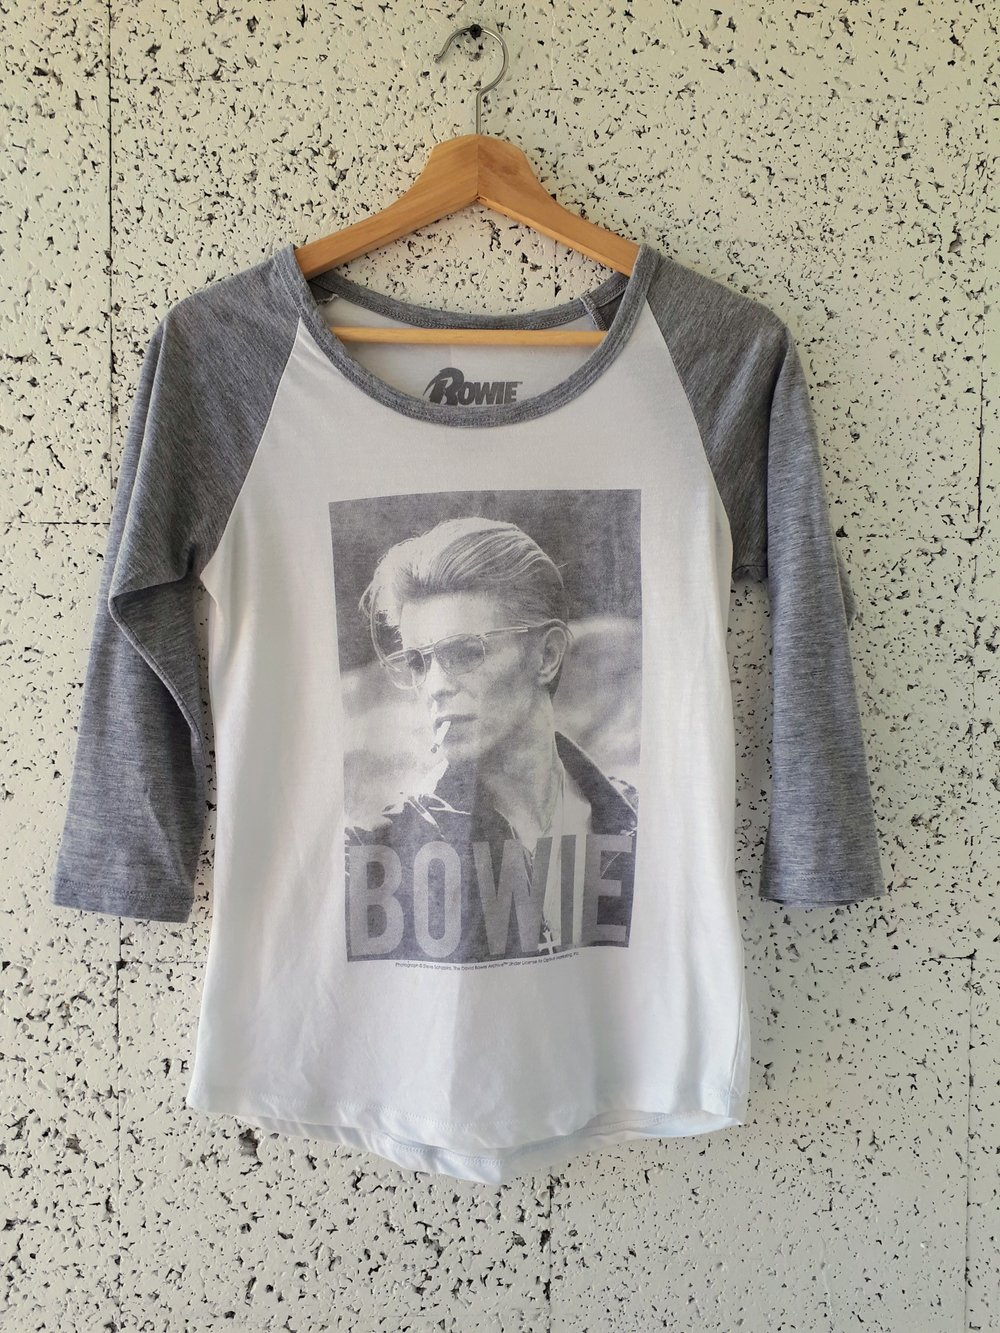 David Bowie T-shirt; Size M, $24